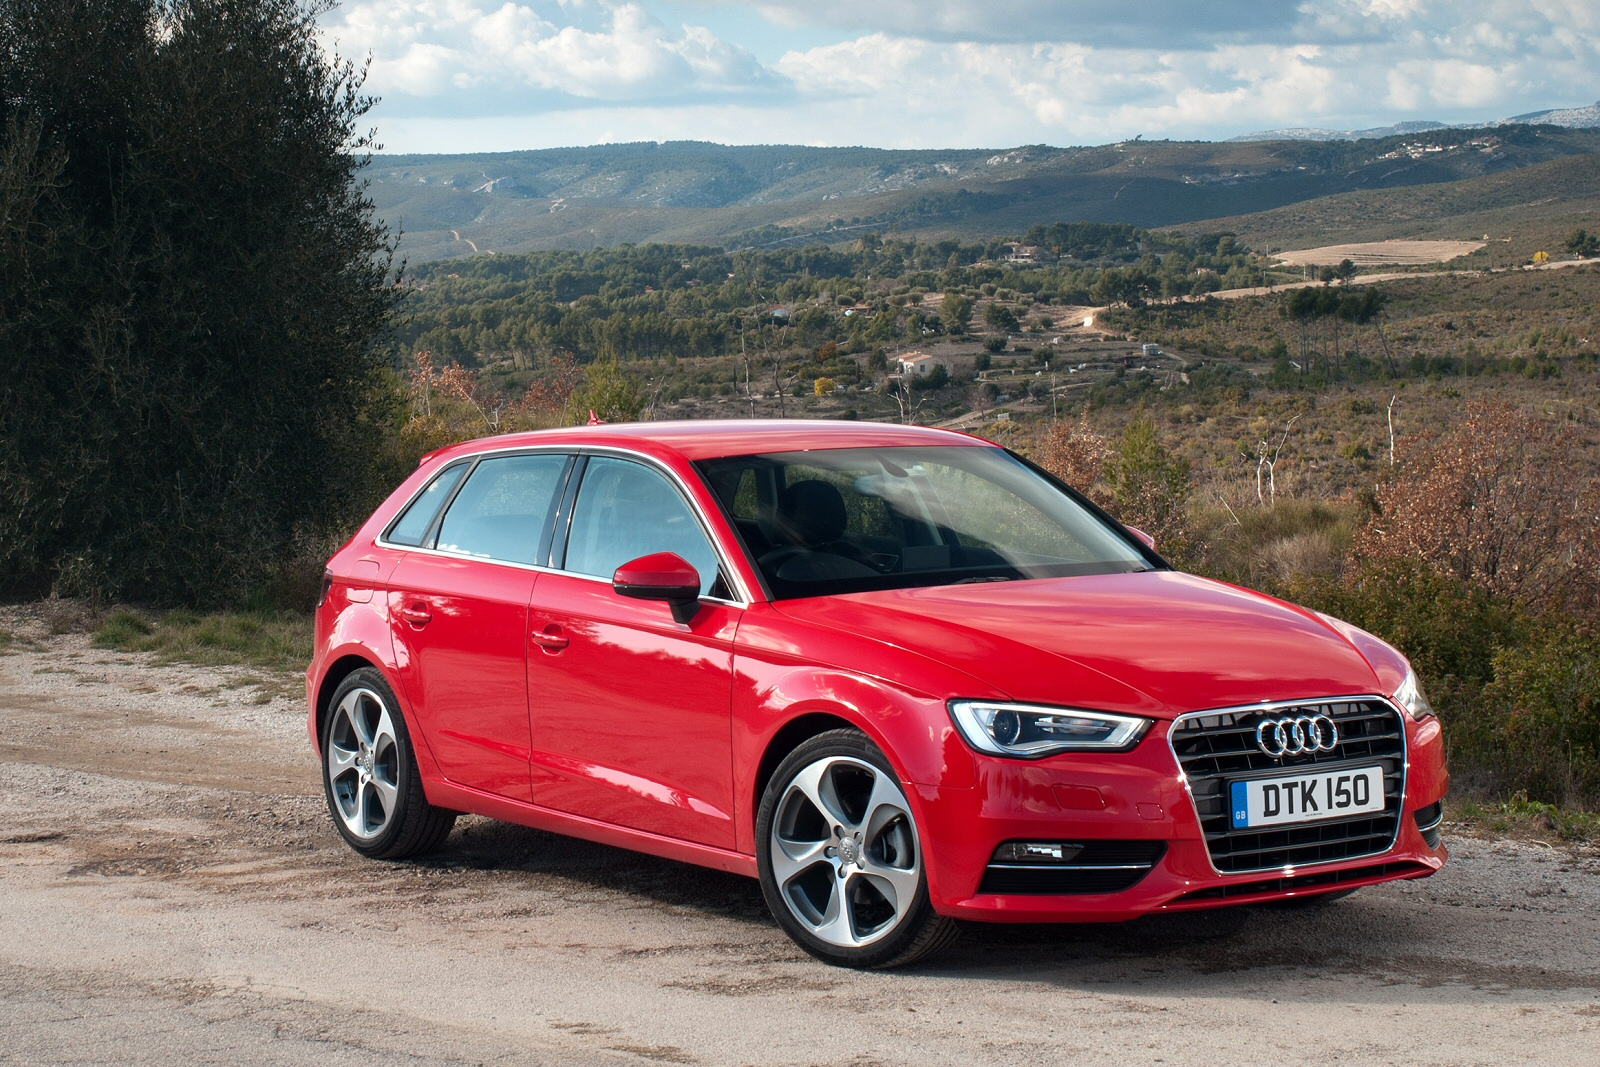 new audi a3 1 0 tfsi sport 5dr s tronic petrol hatchback. Black Bedroom Furniture Sets. Home Design Ideas